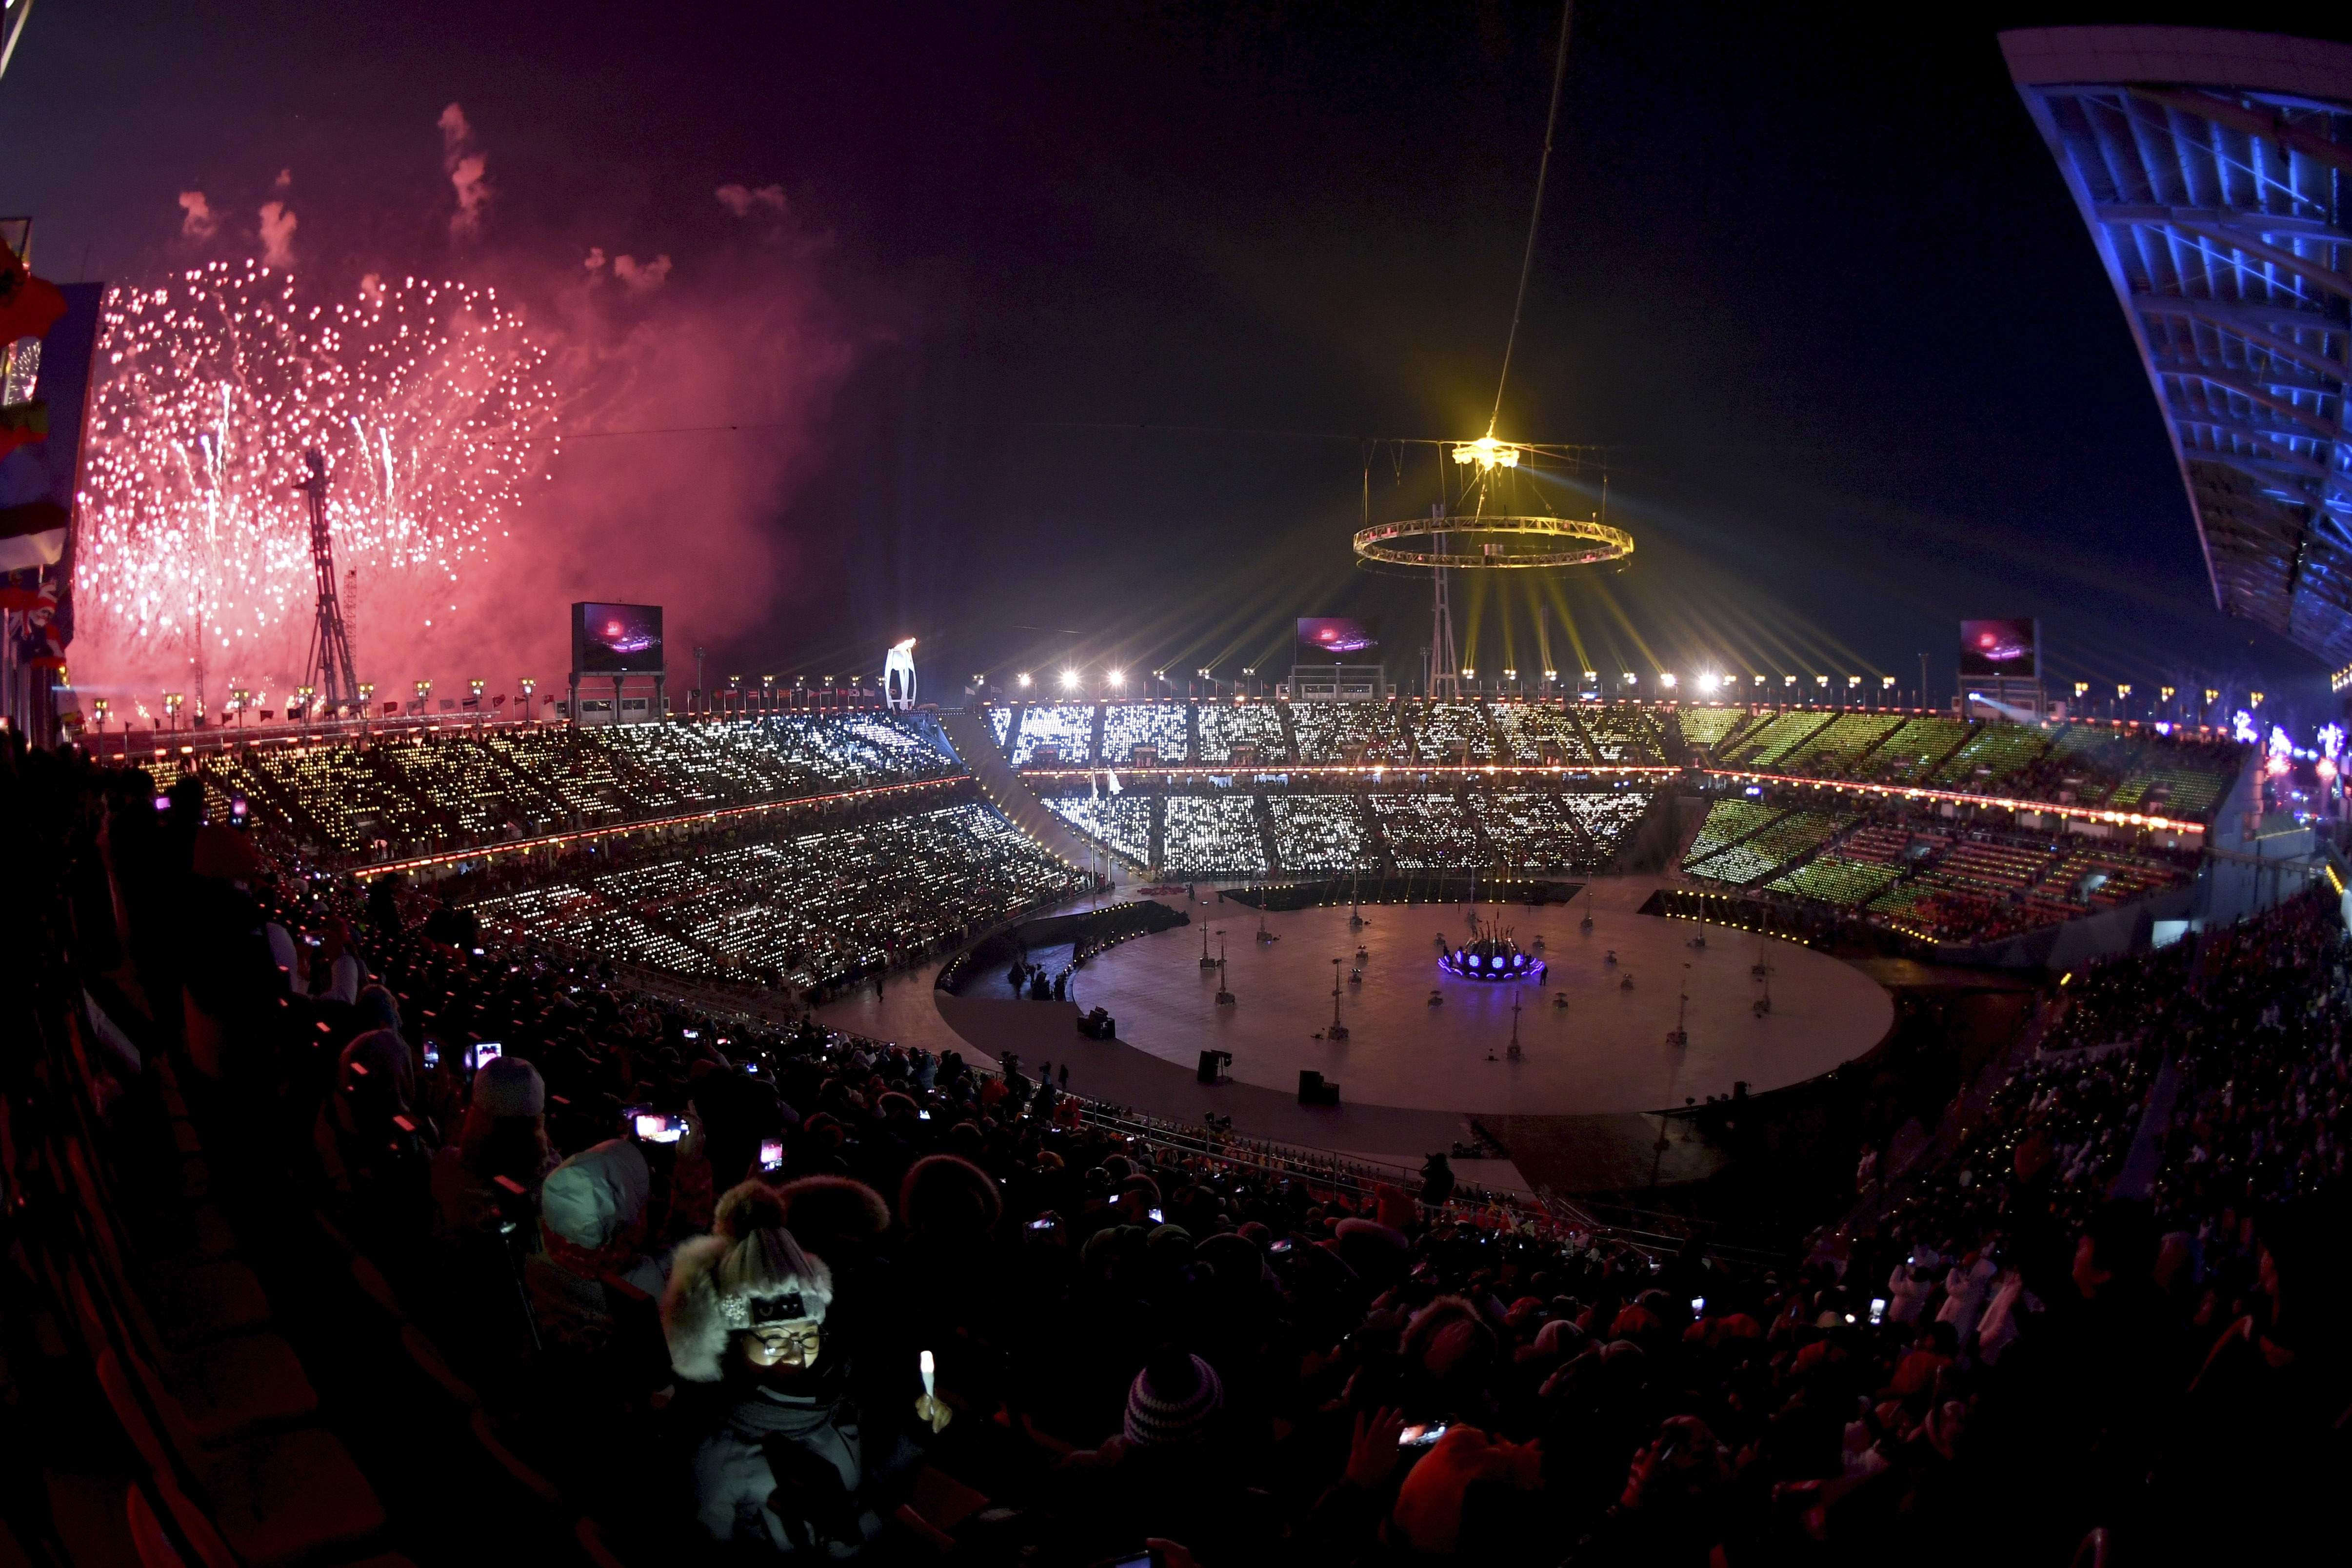 Fireworks go off after the Olympic flame was lit during the opening ceremony of the 2018 Winter Olympics in Pyeongchang, South Korea, Friday, Feb. 9, 2018. (Christof Stache/Pool Photo via AP)